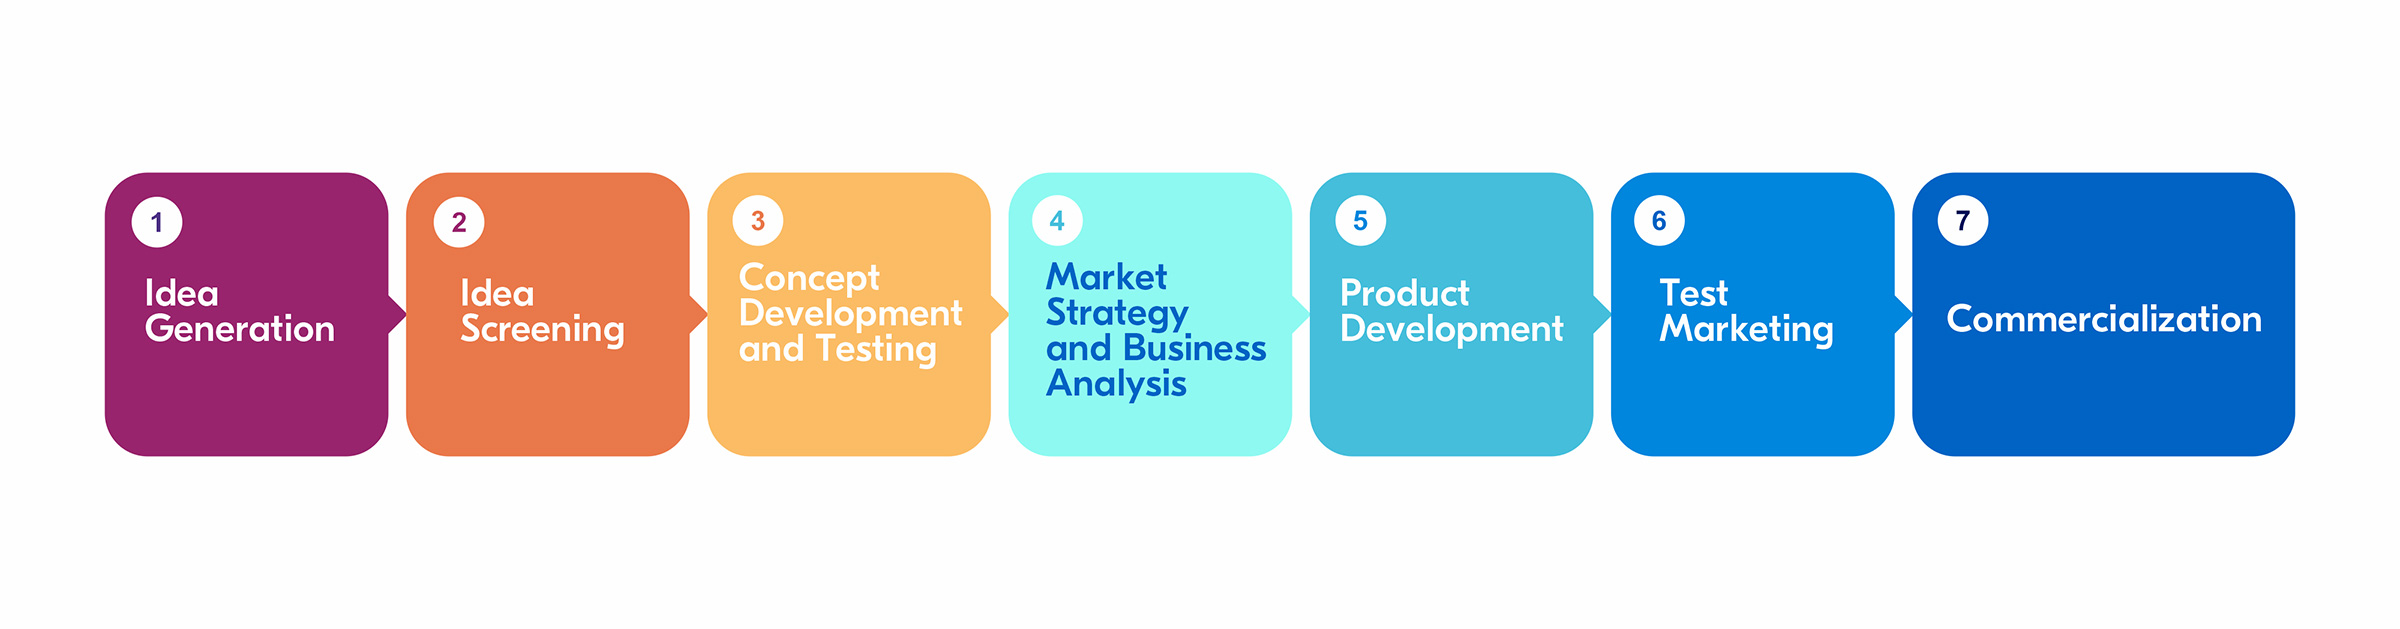 Stages of the new product development